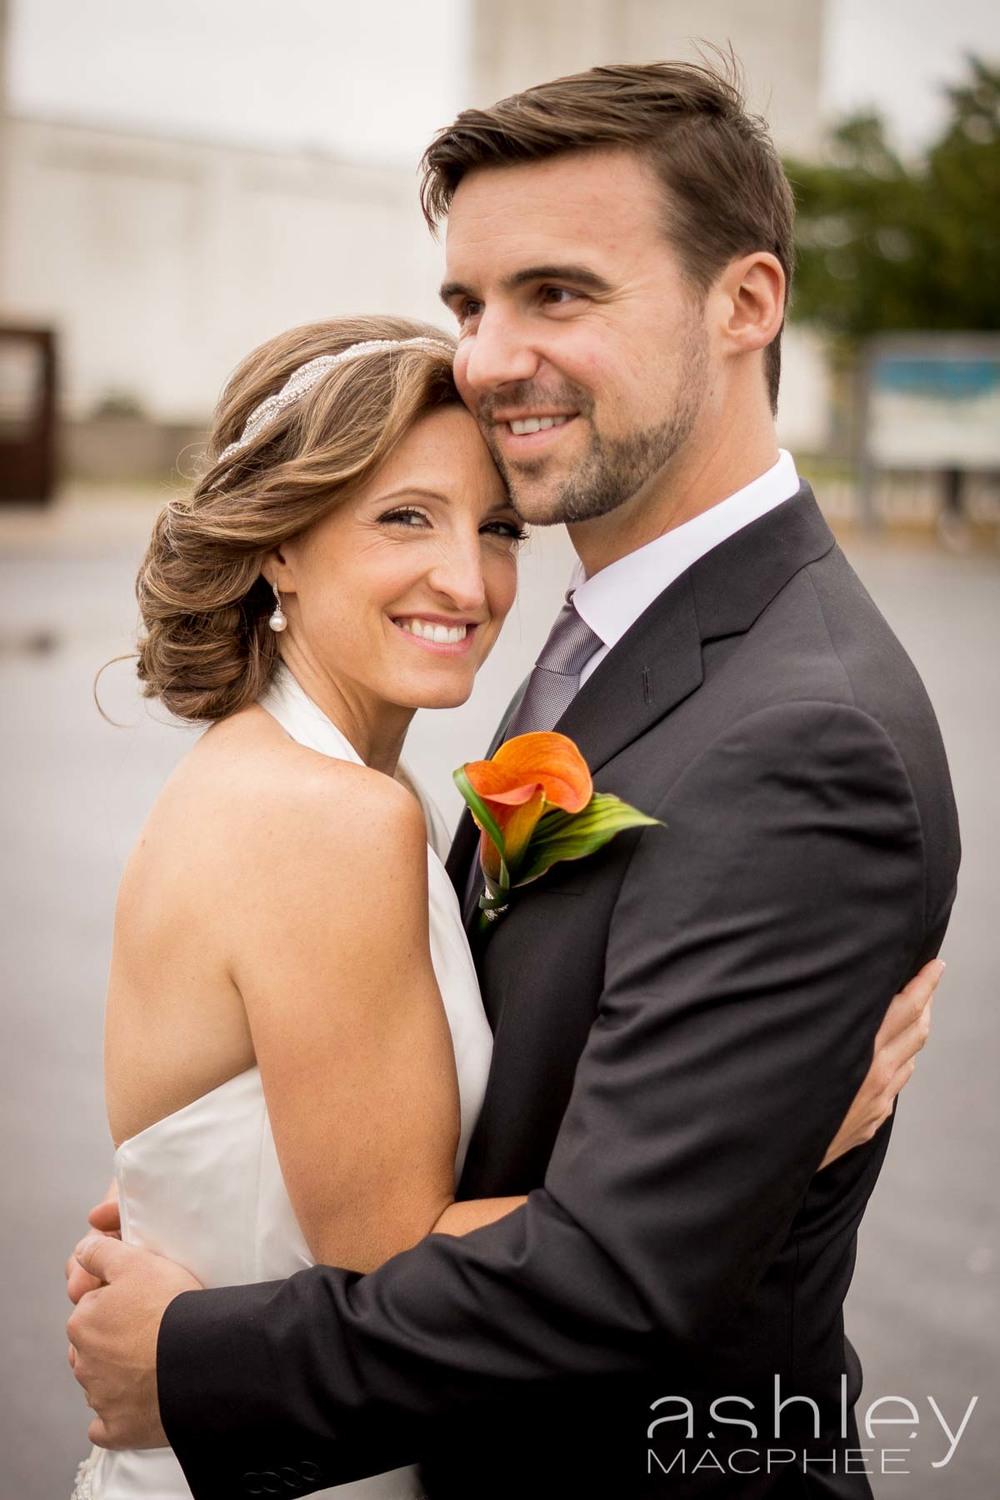 Ashley MacPhee Photography Science CEnter Wedding Photos (5 of 8).jpg